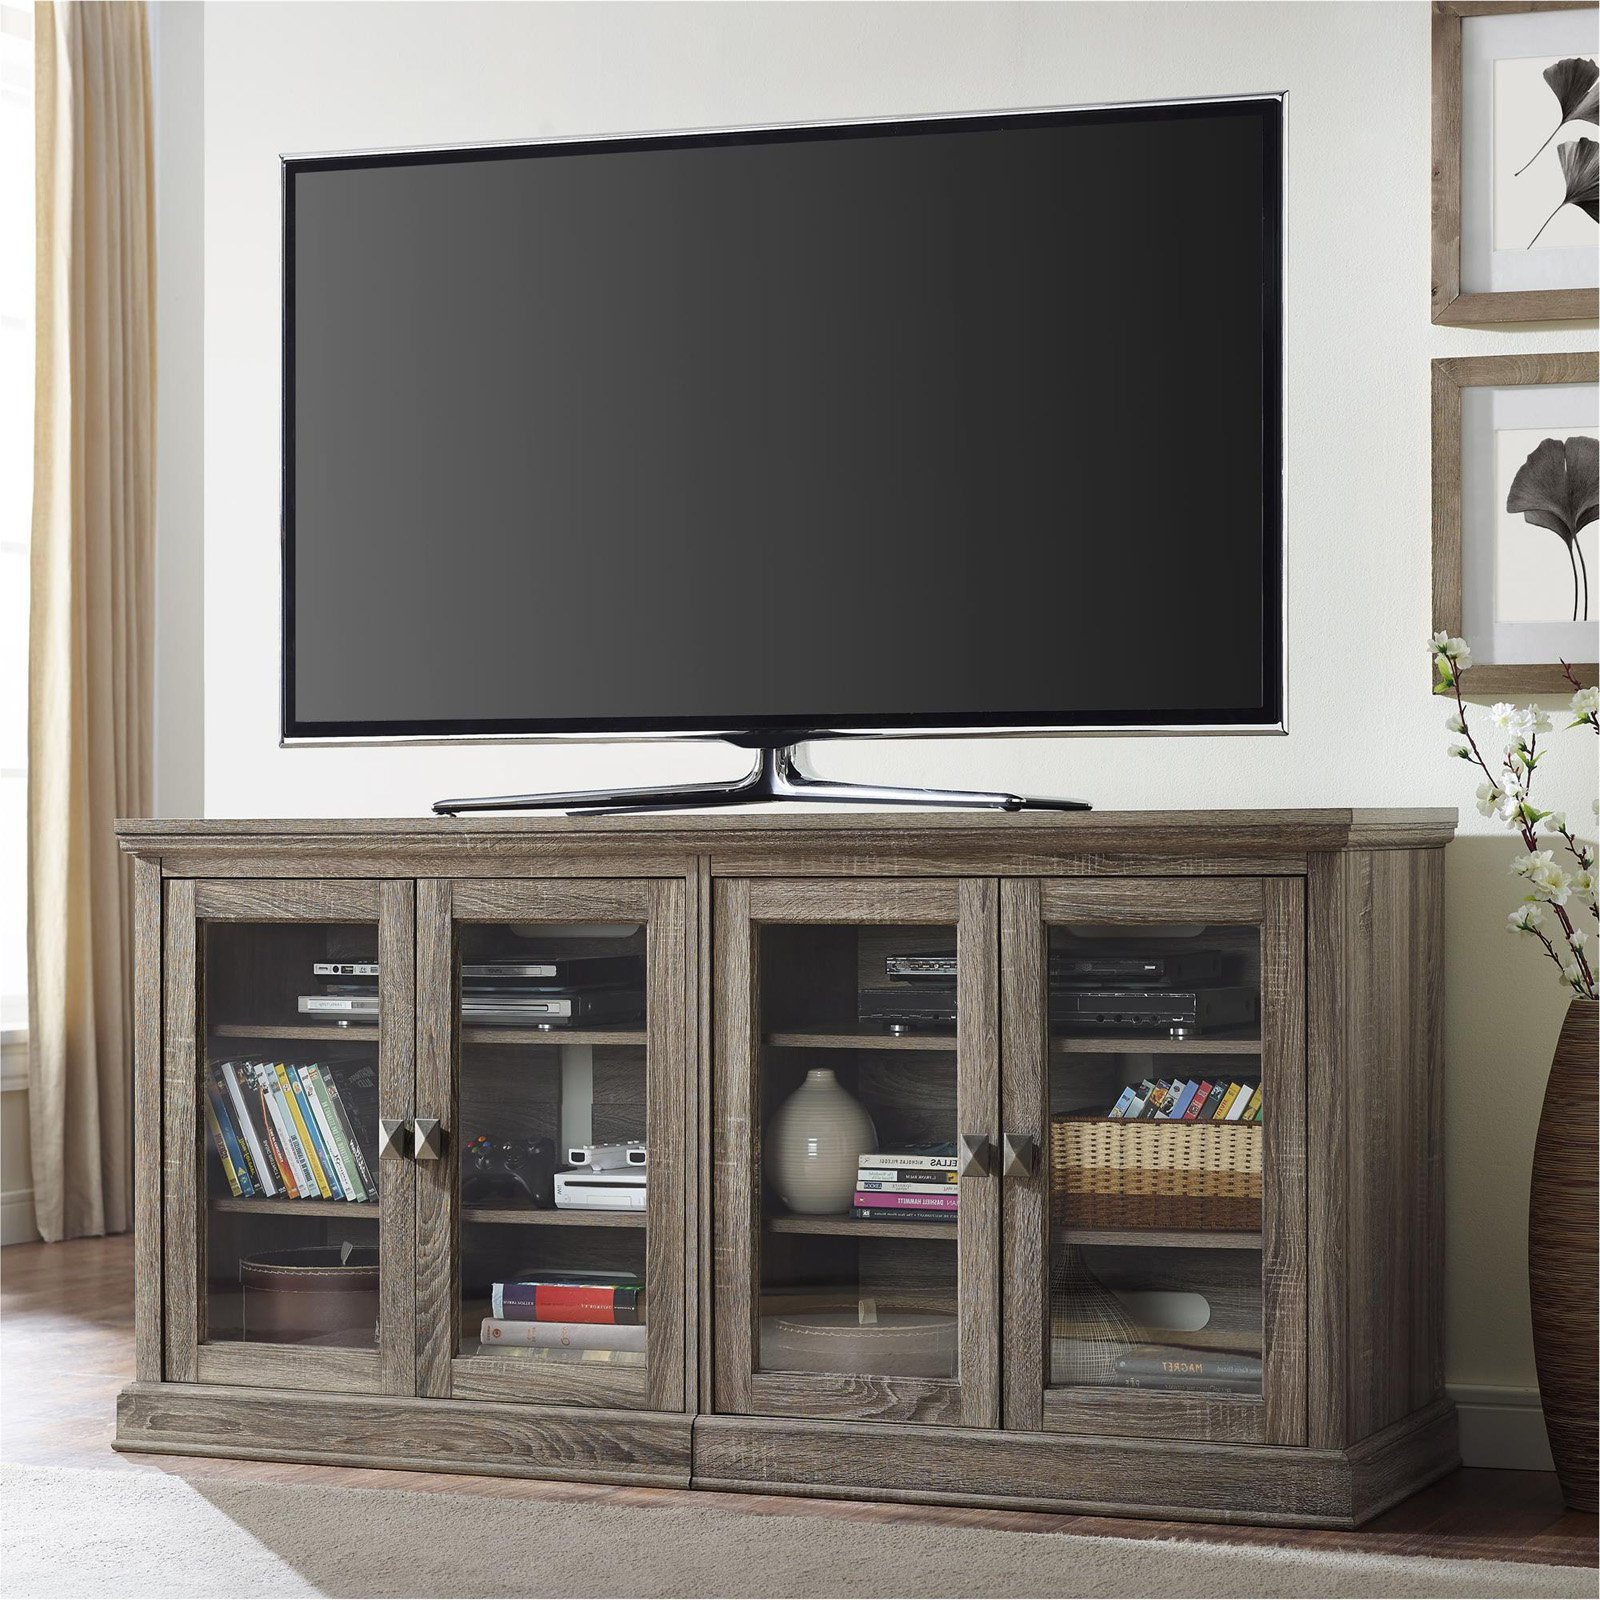 Latest Ameriwood Home Bennett Tv Stand With Glass Doors For Tvs Up To 70 With Regard To Wooden Tv Stands With Glass Doors (Gallery 5 of 20)